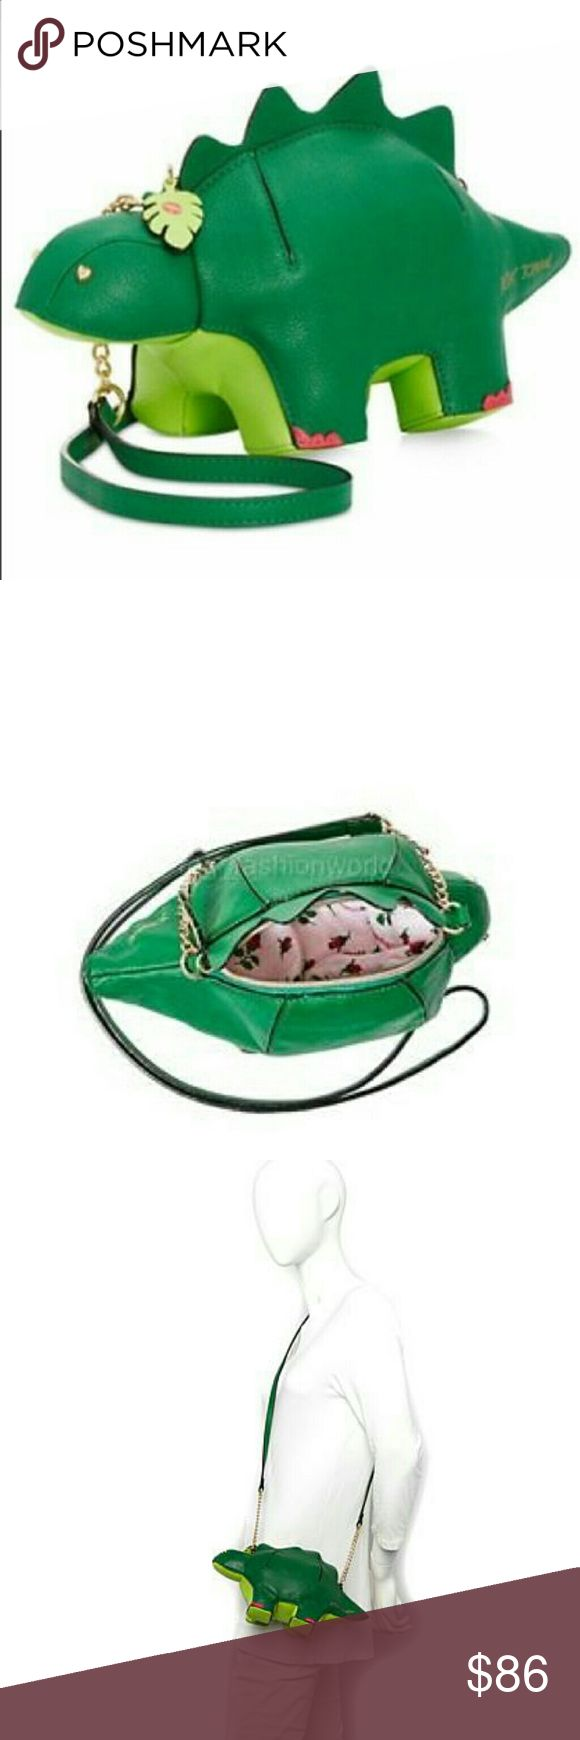 """🎁Betsy Johnson Dinosaur crossbody This little guy holds just enough of your stuff to get you through your day or night.  Stegosaurus shaped silhouetteTextured faux leather Gold tone hardware, including heart shaped stud eyes Top Zipper closure, with green """"LEAF"""" shaped zipper pull Green leaf has a Betsey """"kiss"""" print in fuchsia on one side Structured, stands on it's own. Measurements 6""""Hx12""""Lx5""""D Partial chain strap 23"""" drop  Please don't comment about pricing in my listing, I'd much rather…"""